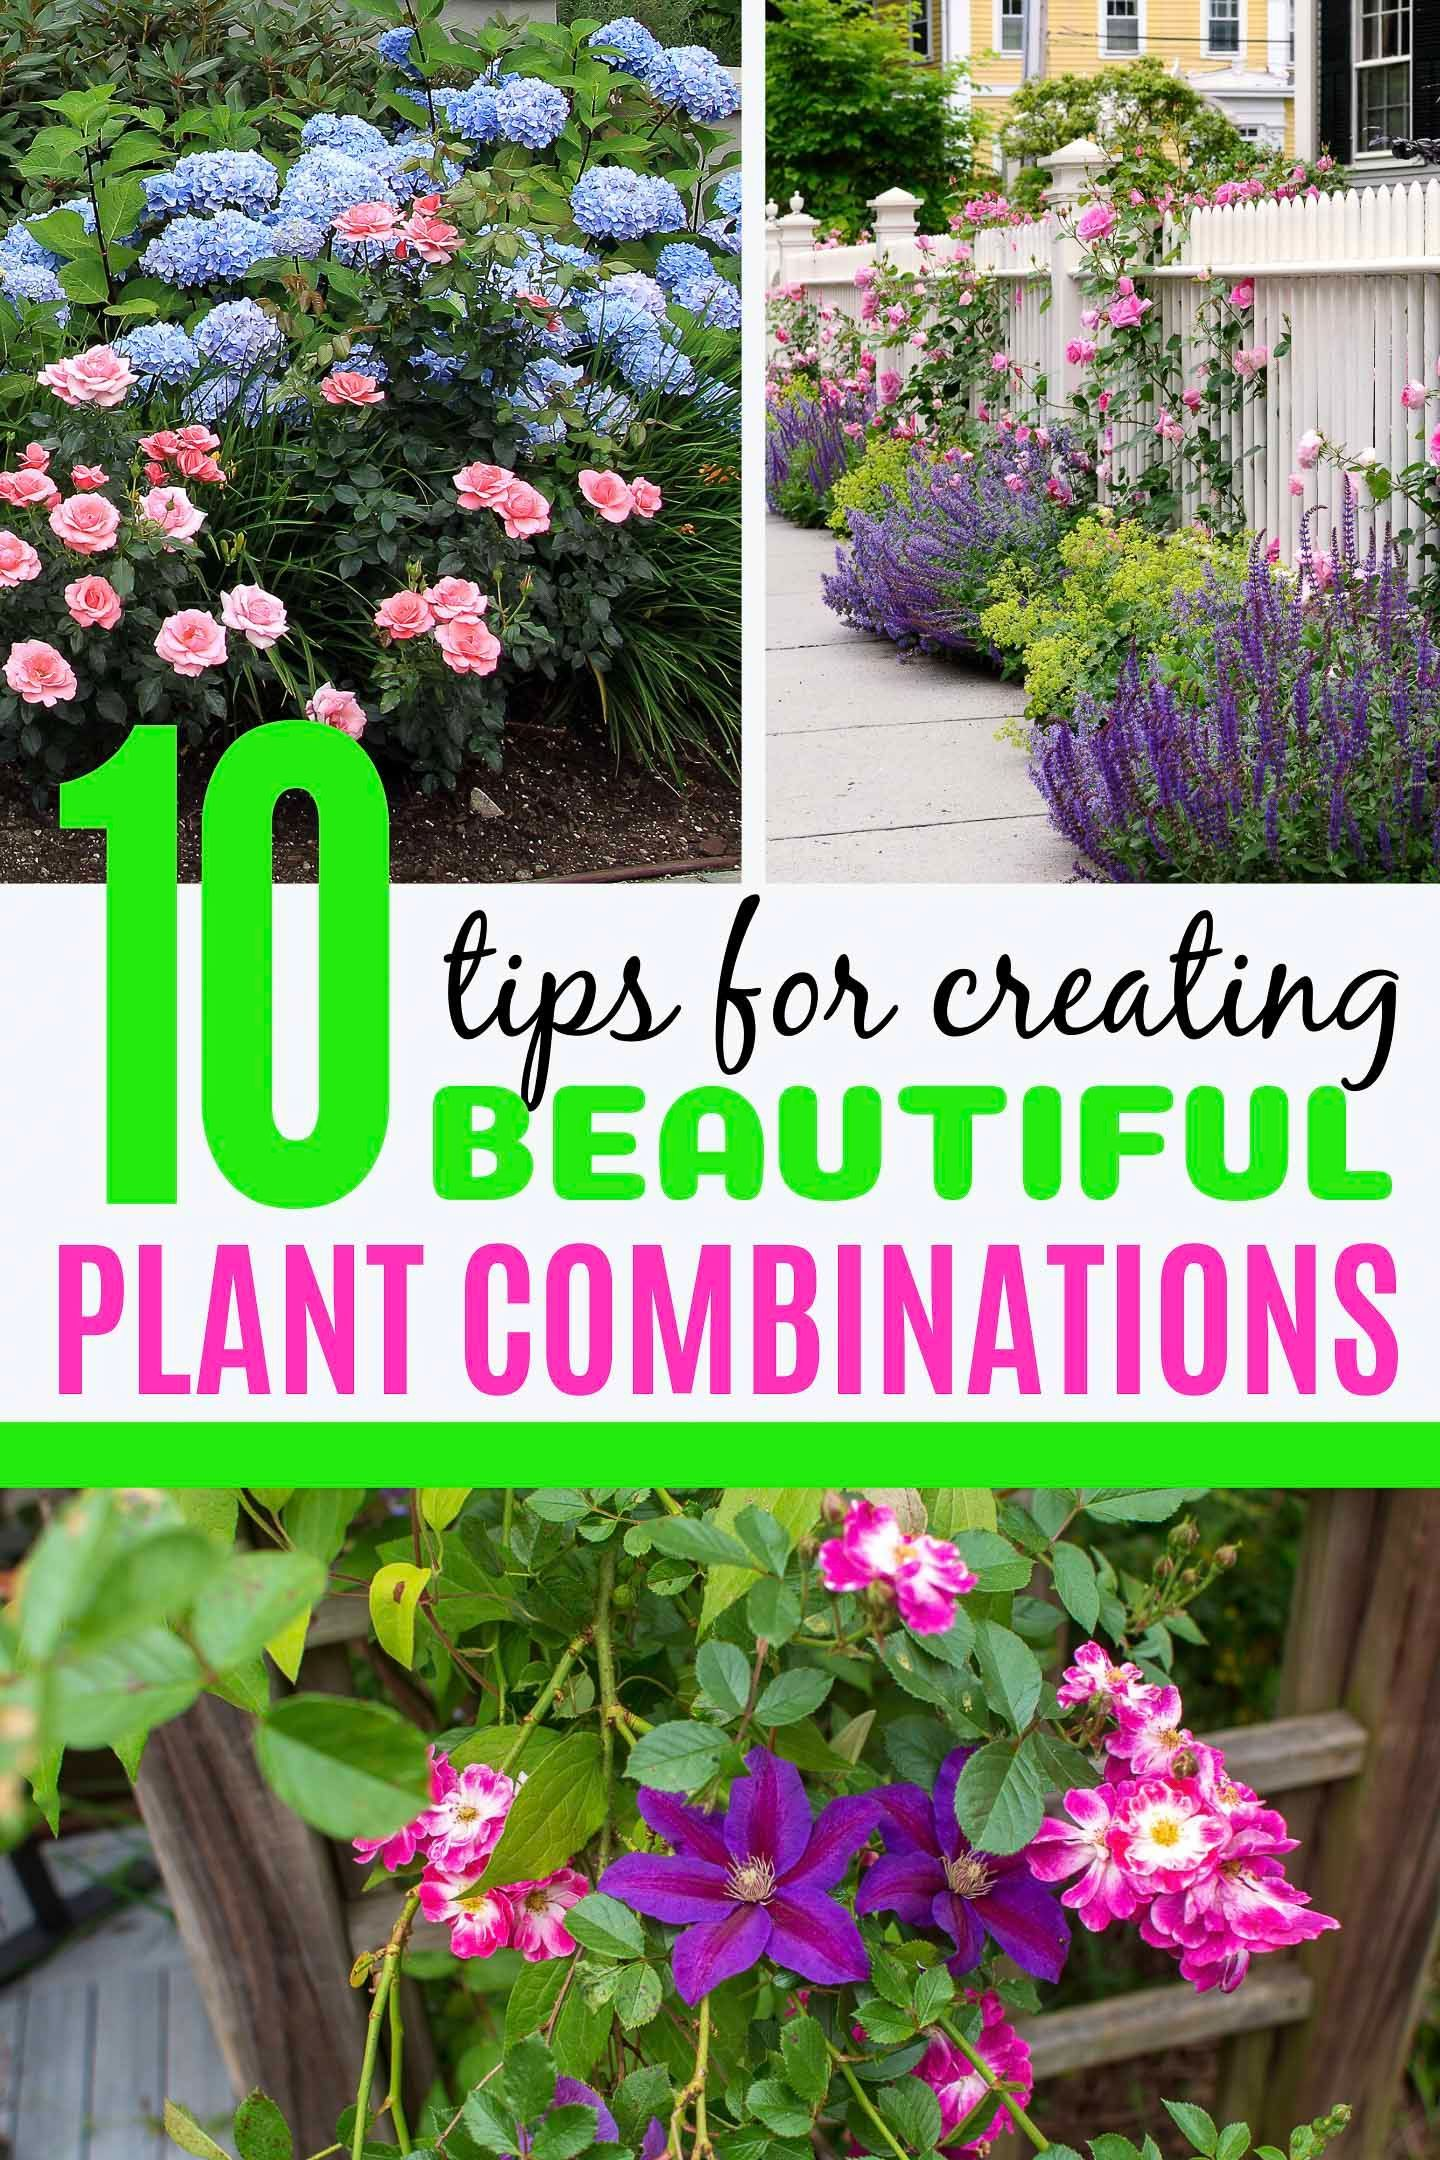 10 Tips For Creating Plant Combinations That Work is part of Plants, Plant combinations, Perennial garden, Landscaping trees, Easy backyard landscaping, Garden design - These tips for creating plant combinations that work will take the guesswork out of landscaping a beautiful garden for your yard